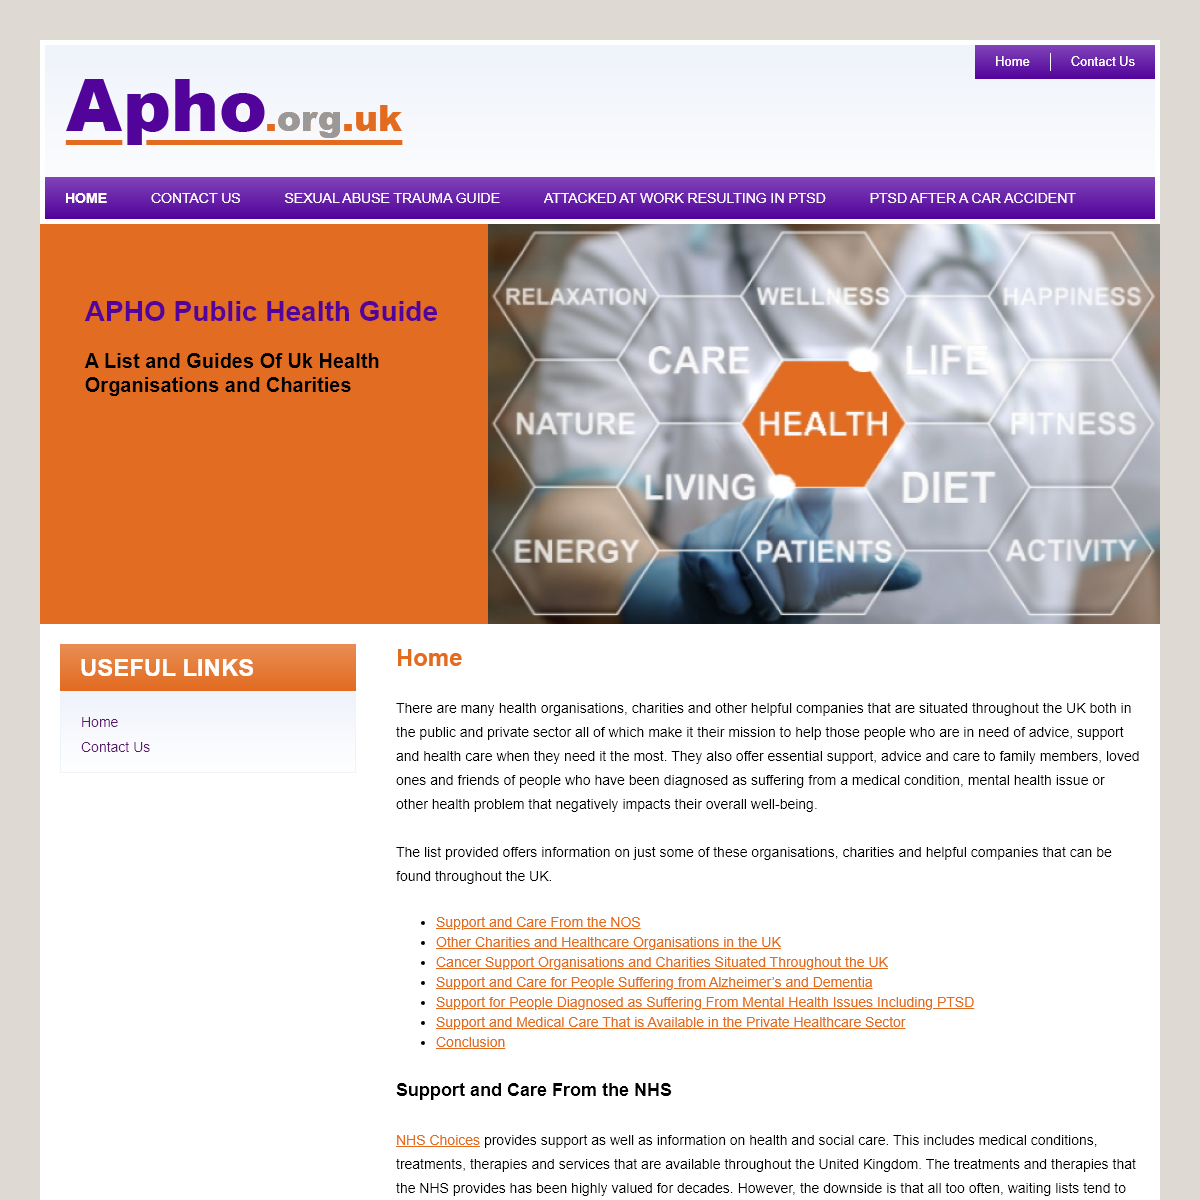 Home - APHO Public Health Guide - Health & Medical Information In The UK